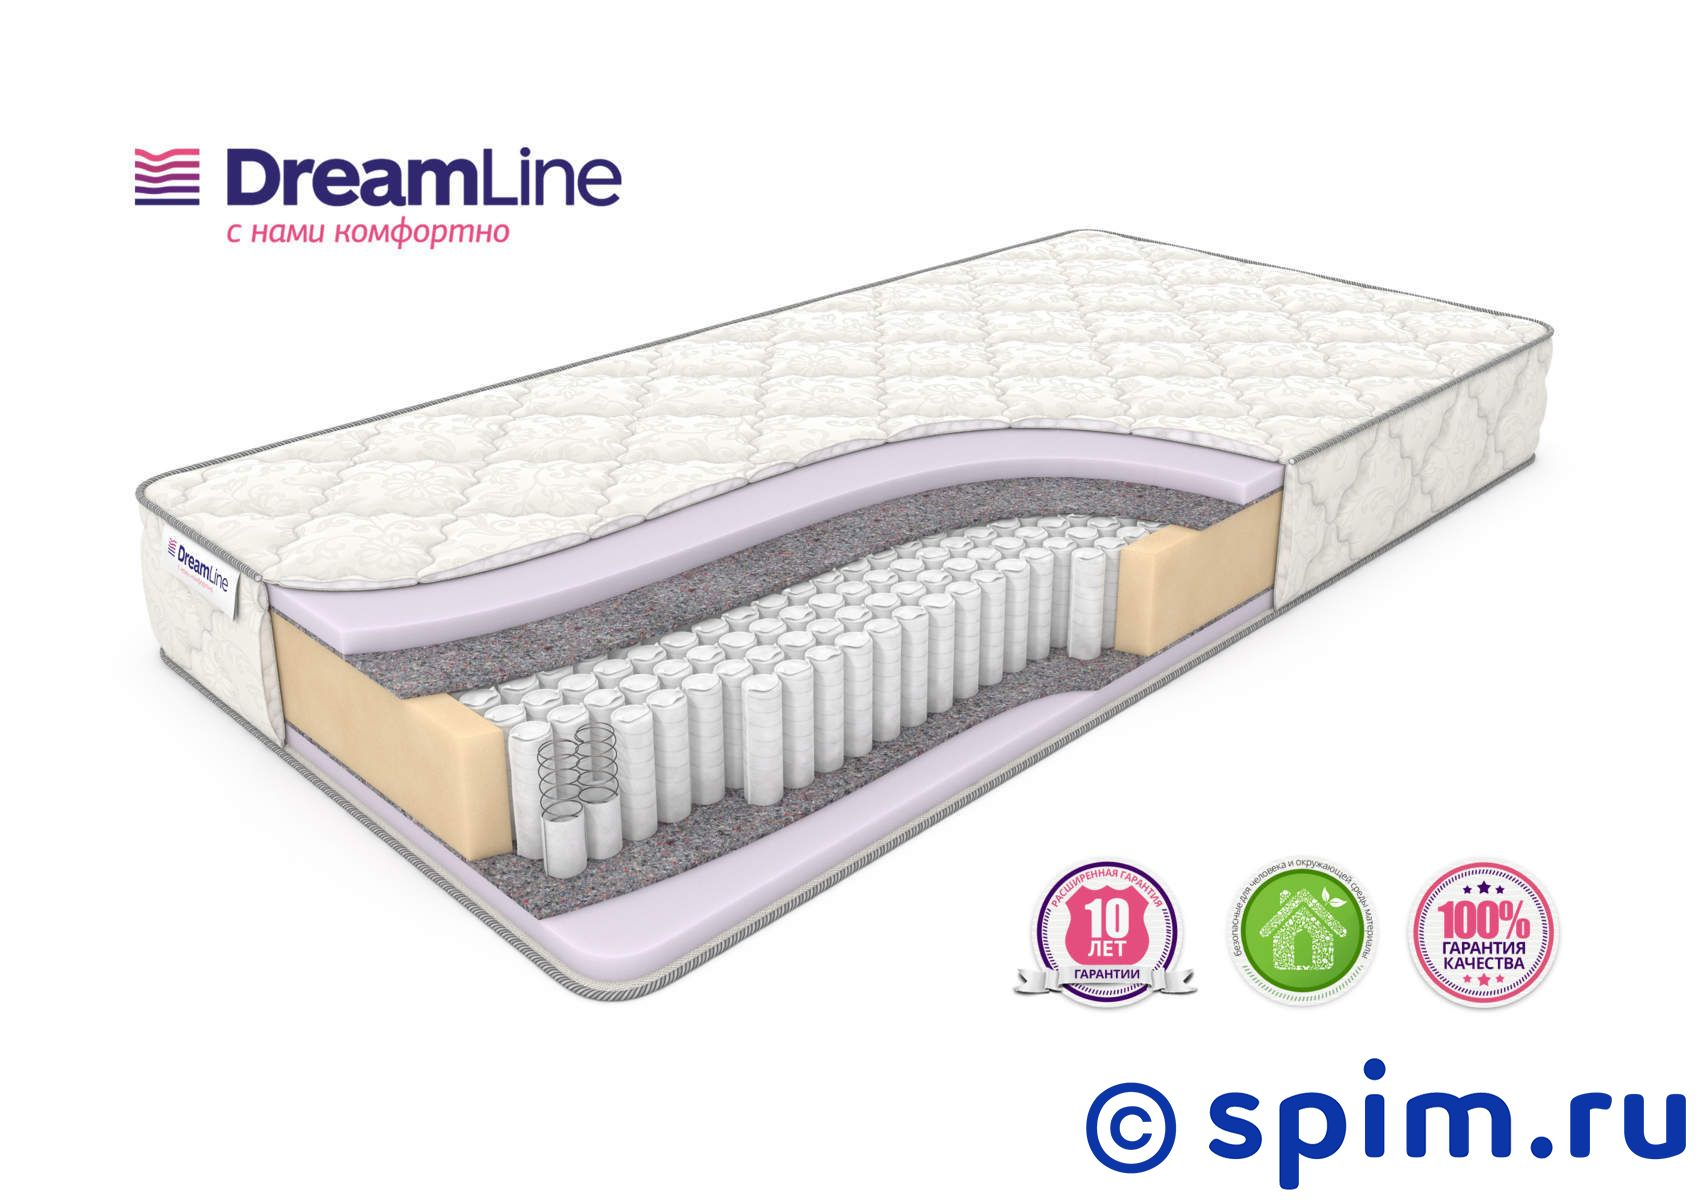 Матрас DreamLine Eco Foam S1000 200х200 см матрас dreamline memory dream s 1000 90x195